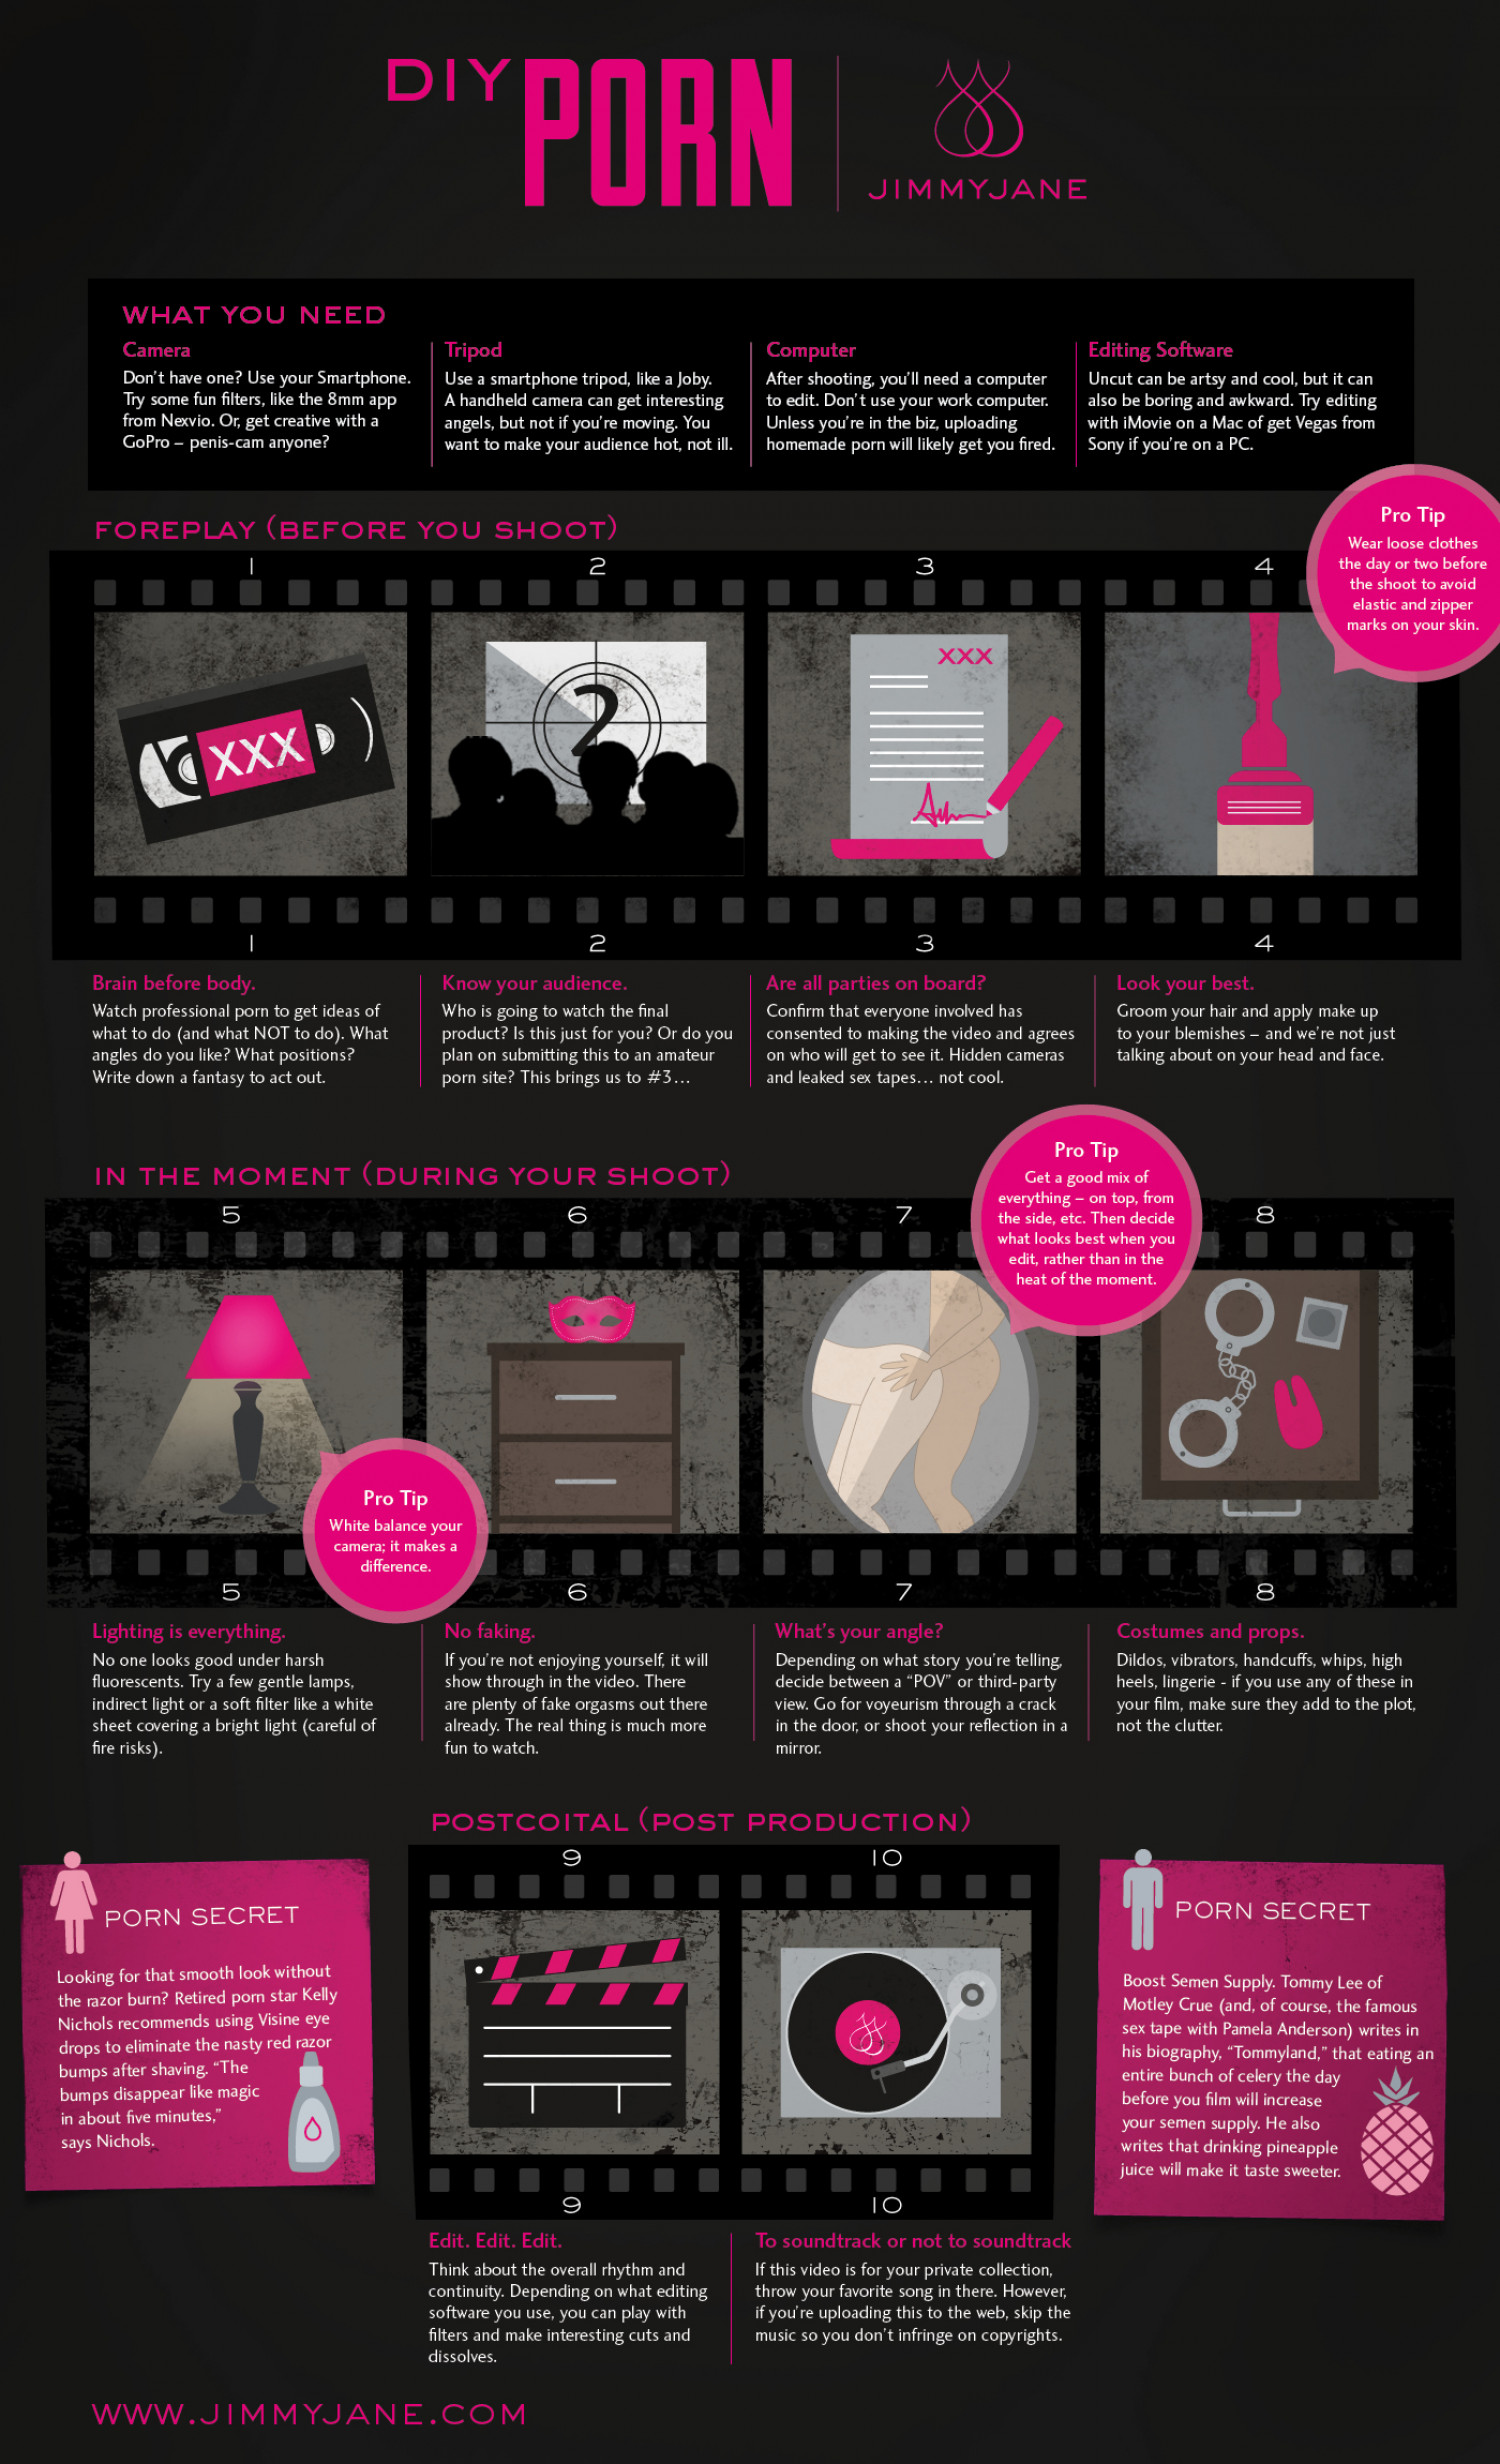 DIY Porn by Jimmyjane Infographic